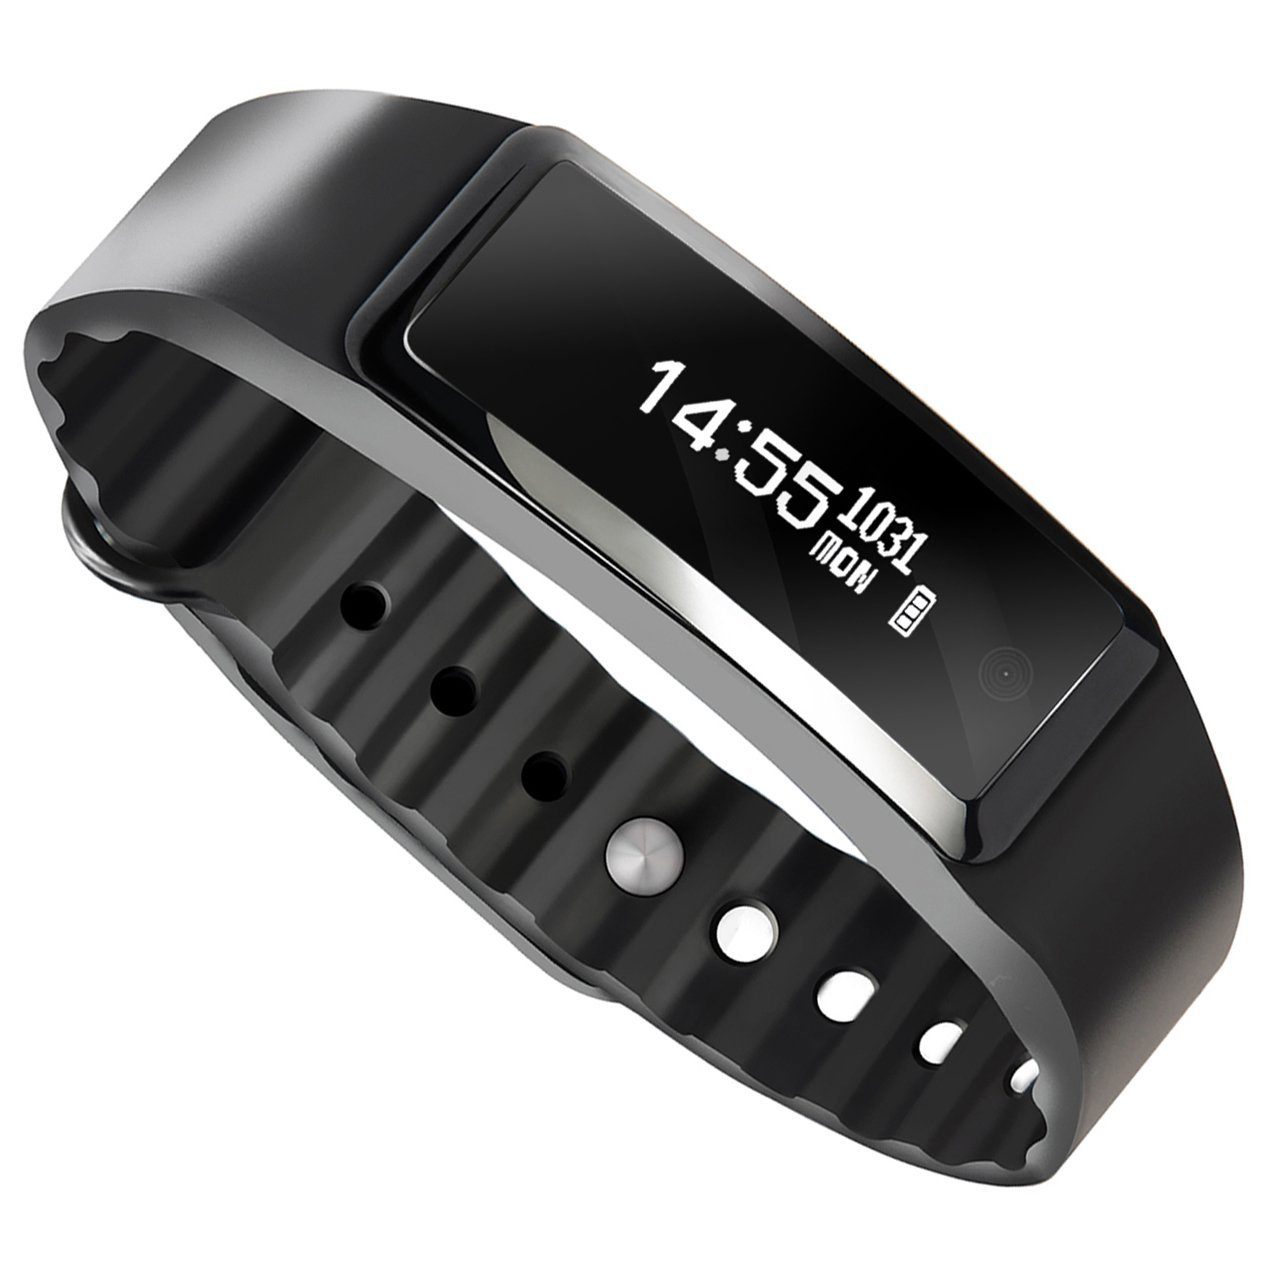 Beasyjoy Fitness Tracker